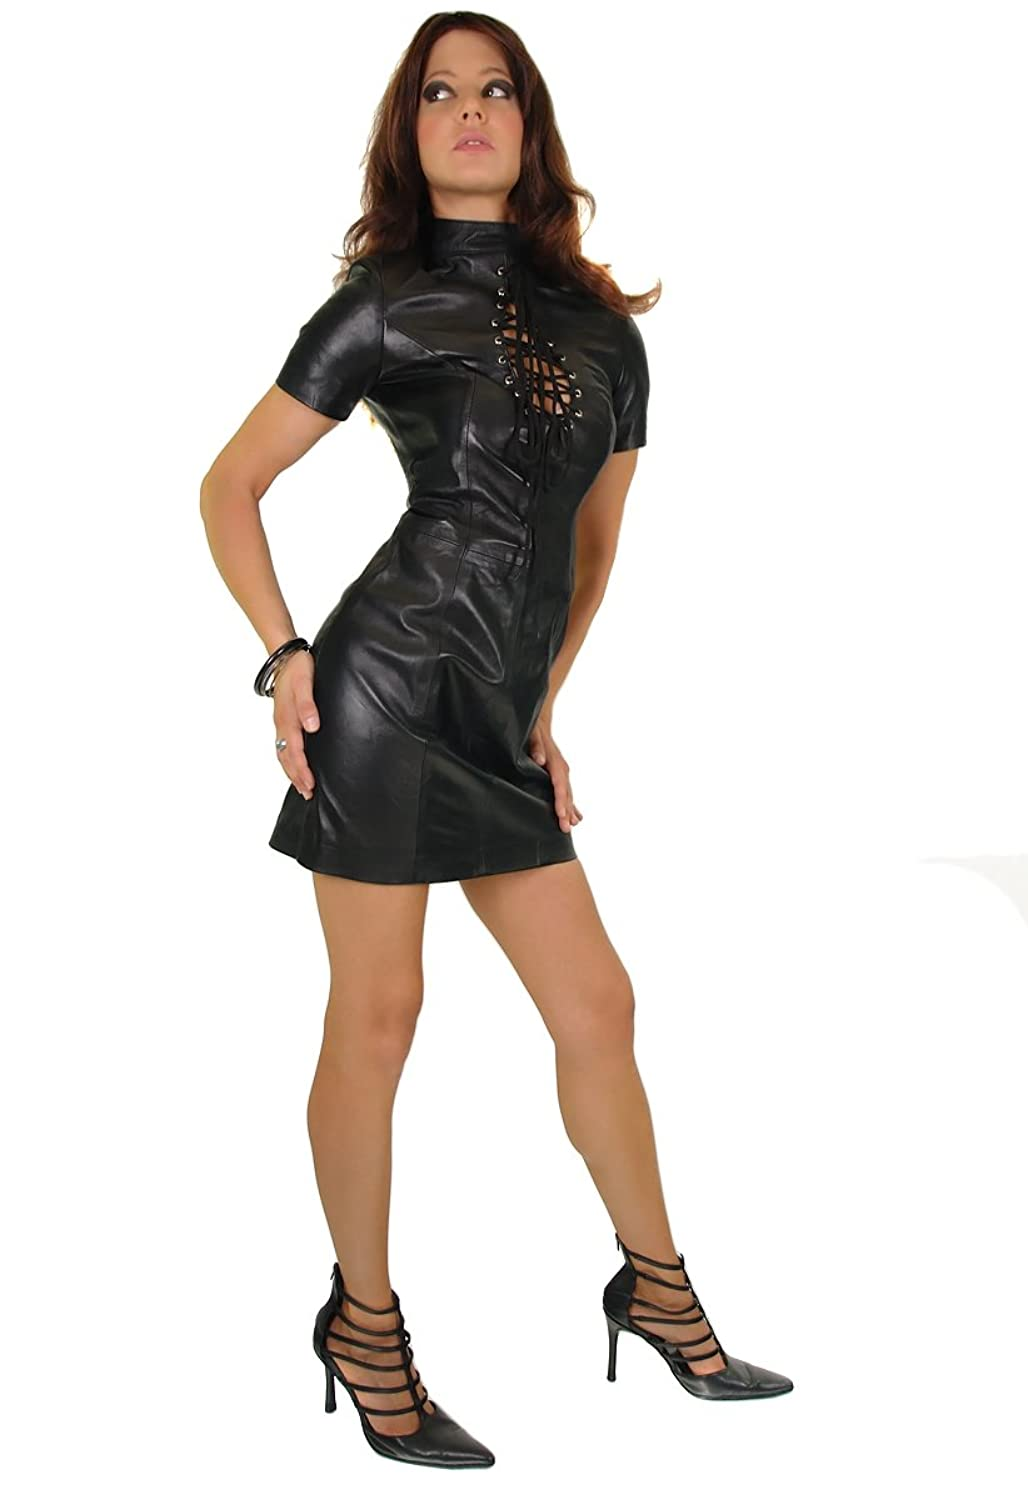 Asia Domina Dress Genuine Leather Black with collar and short Arm. Model S81